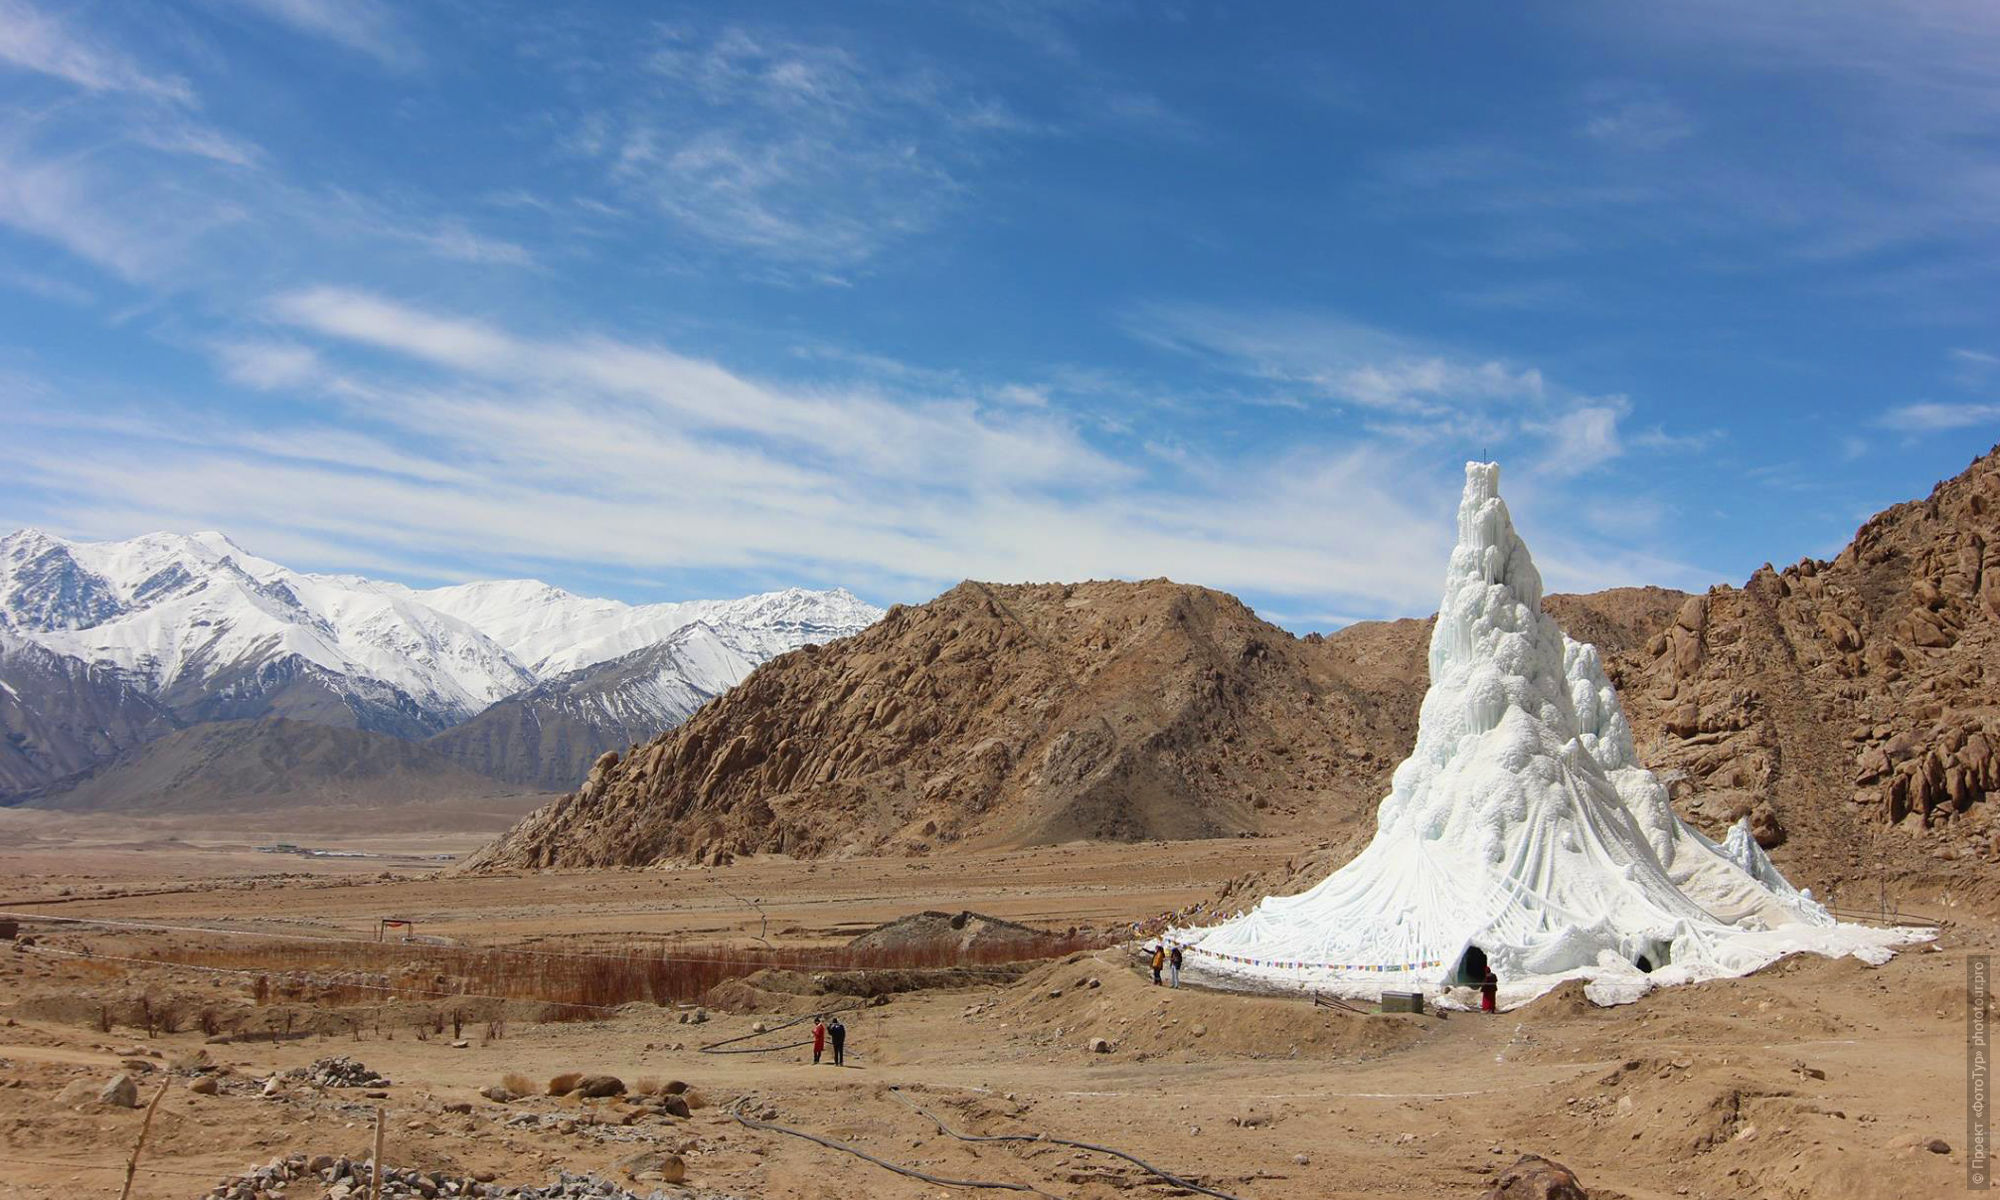 Ice stupa in the vicinity of the village of Pyang. Photo tour to Tibet for the Winter Mysteries in Ladakh, Stok and Matho monasteries, 01.03. - 03/10/2020